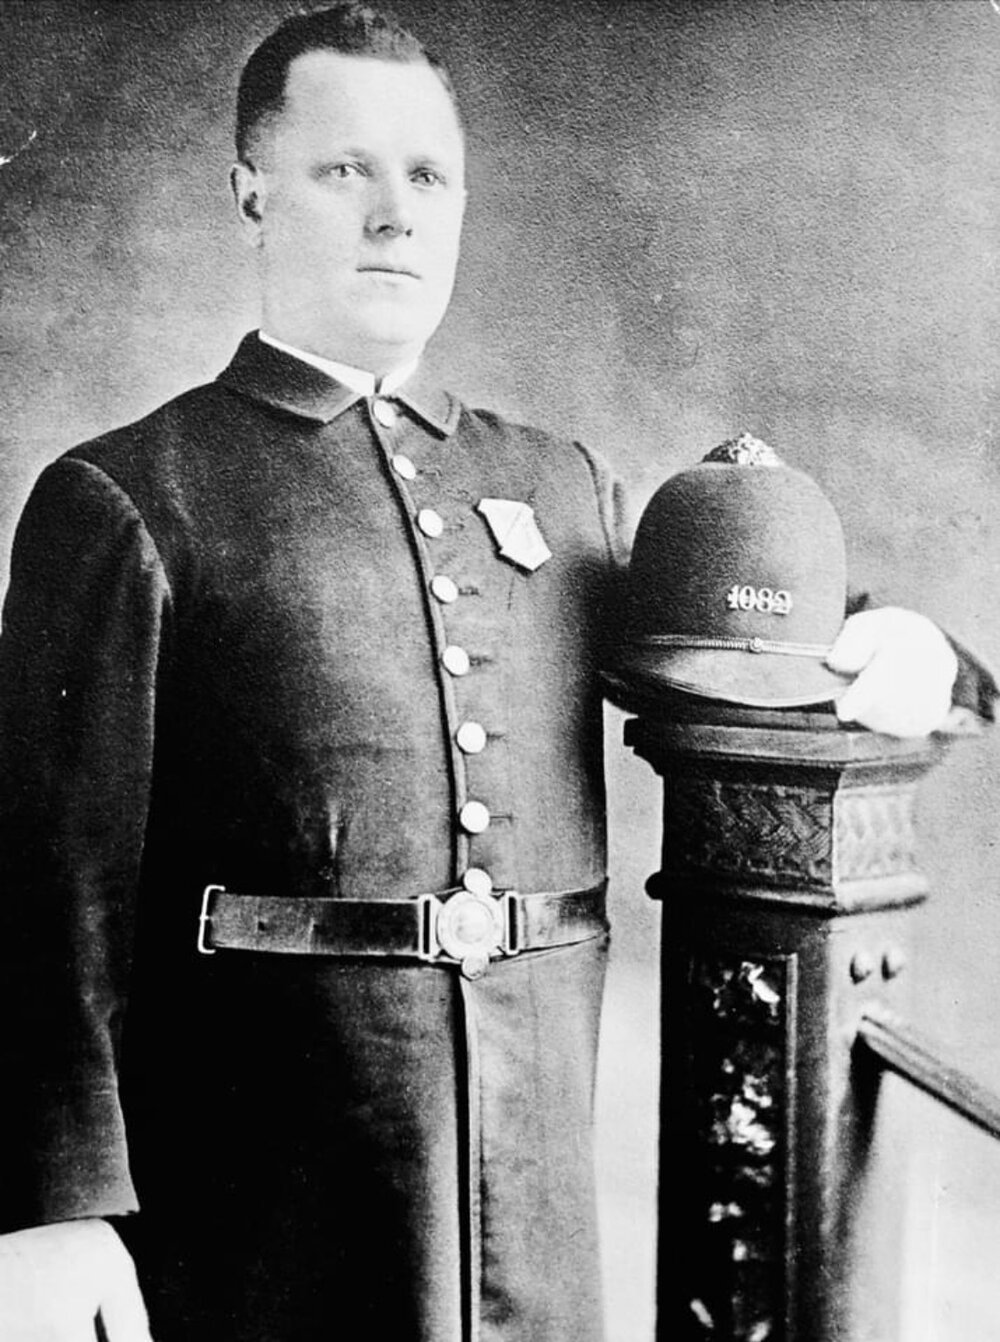 BPD Remembers the Service and Sacrifice of Patrolman Patrick J. Carr Killed in the Line of Duty 105 Years Ago